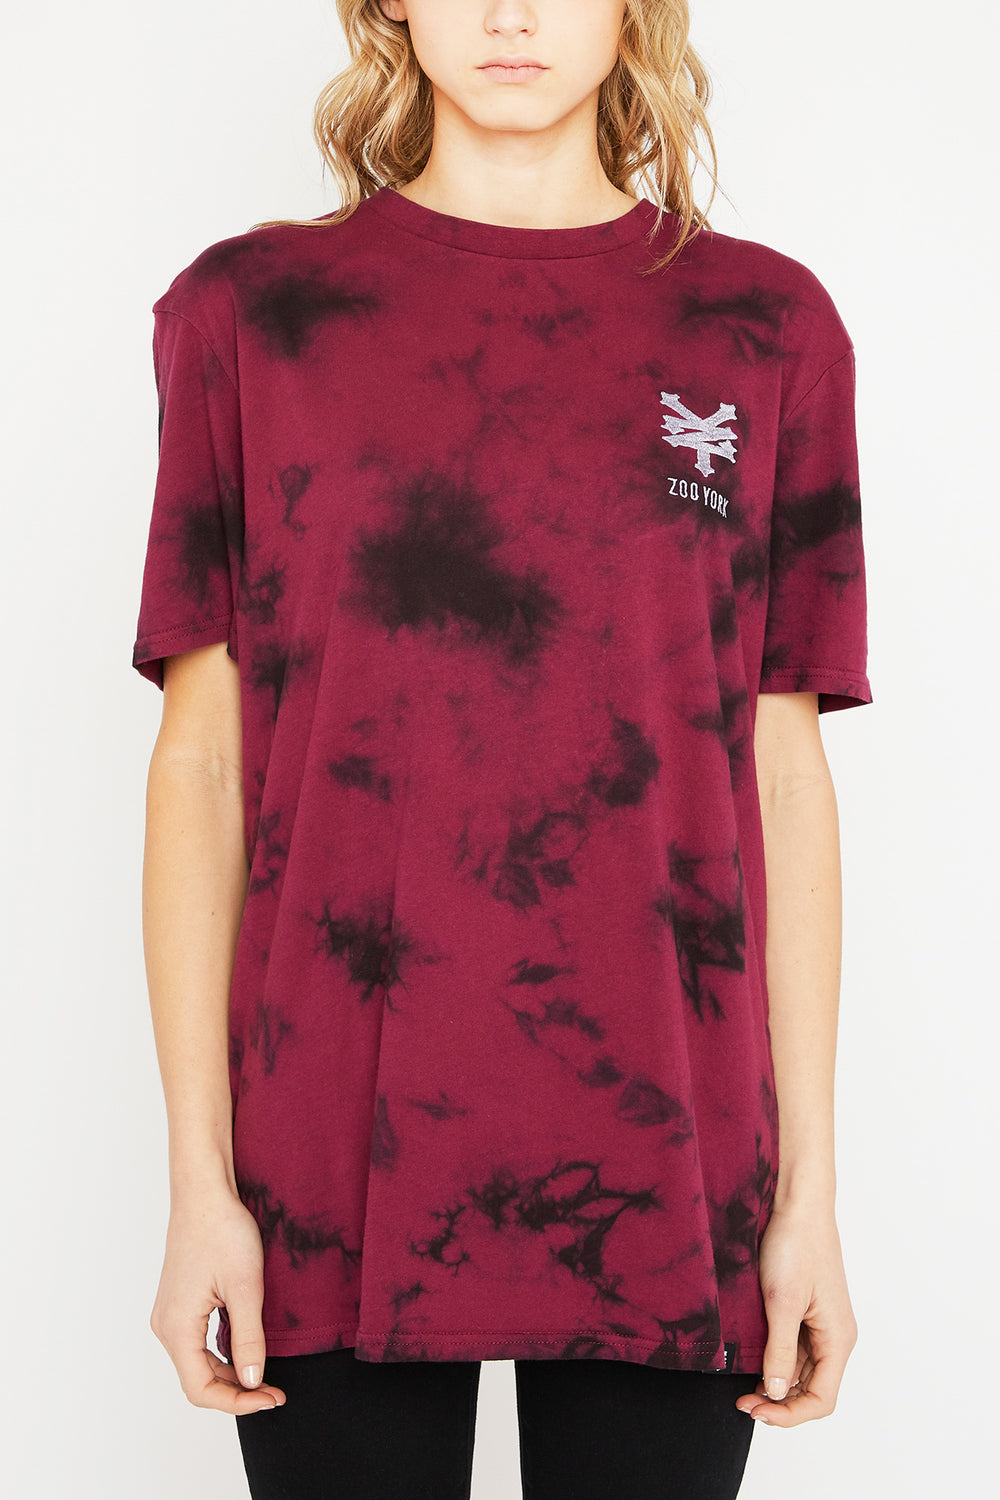 Zoo York Unisex Red Tie-Dye T-Shirt Red